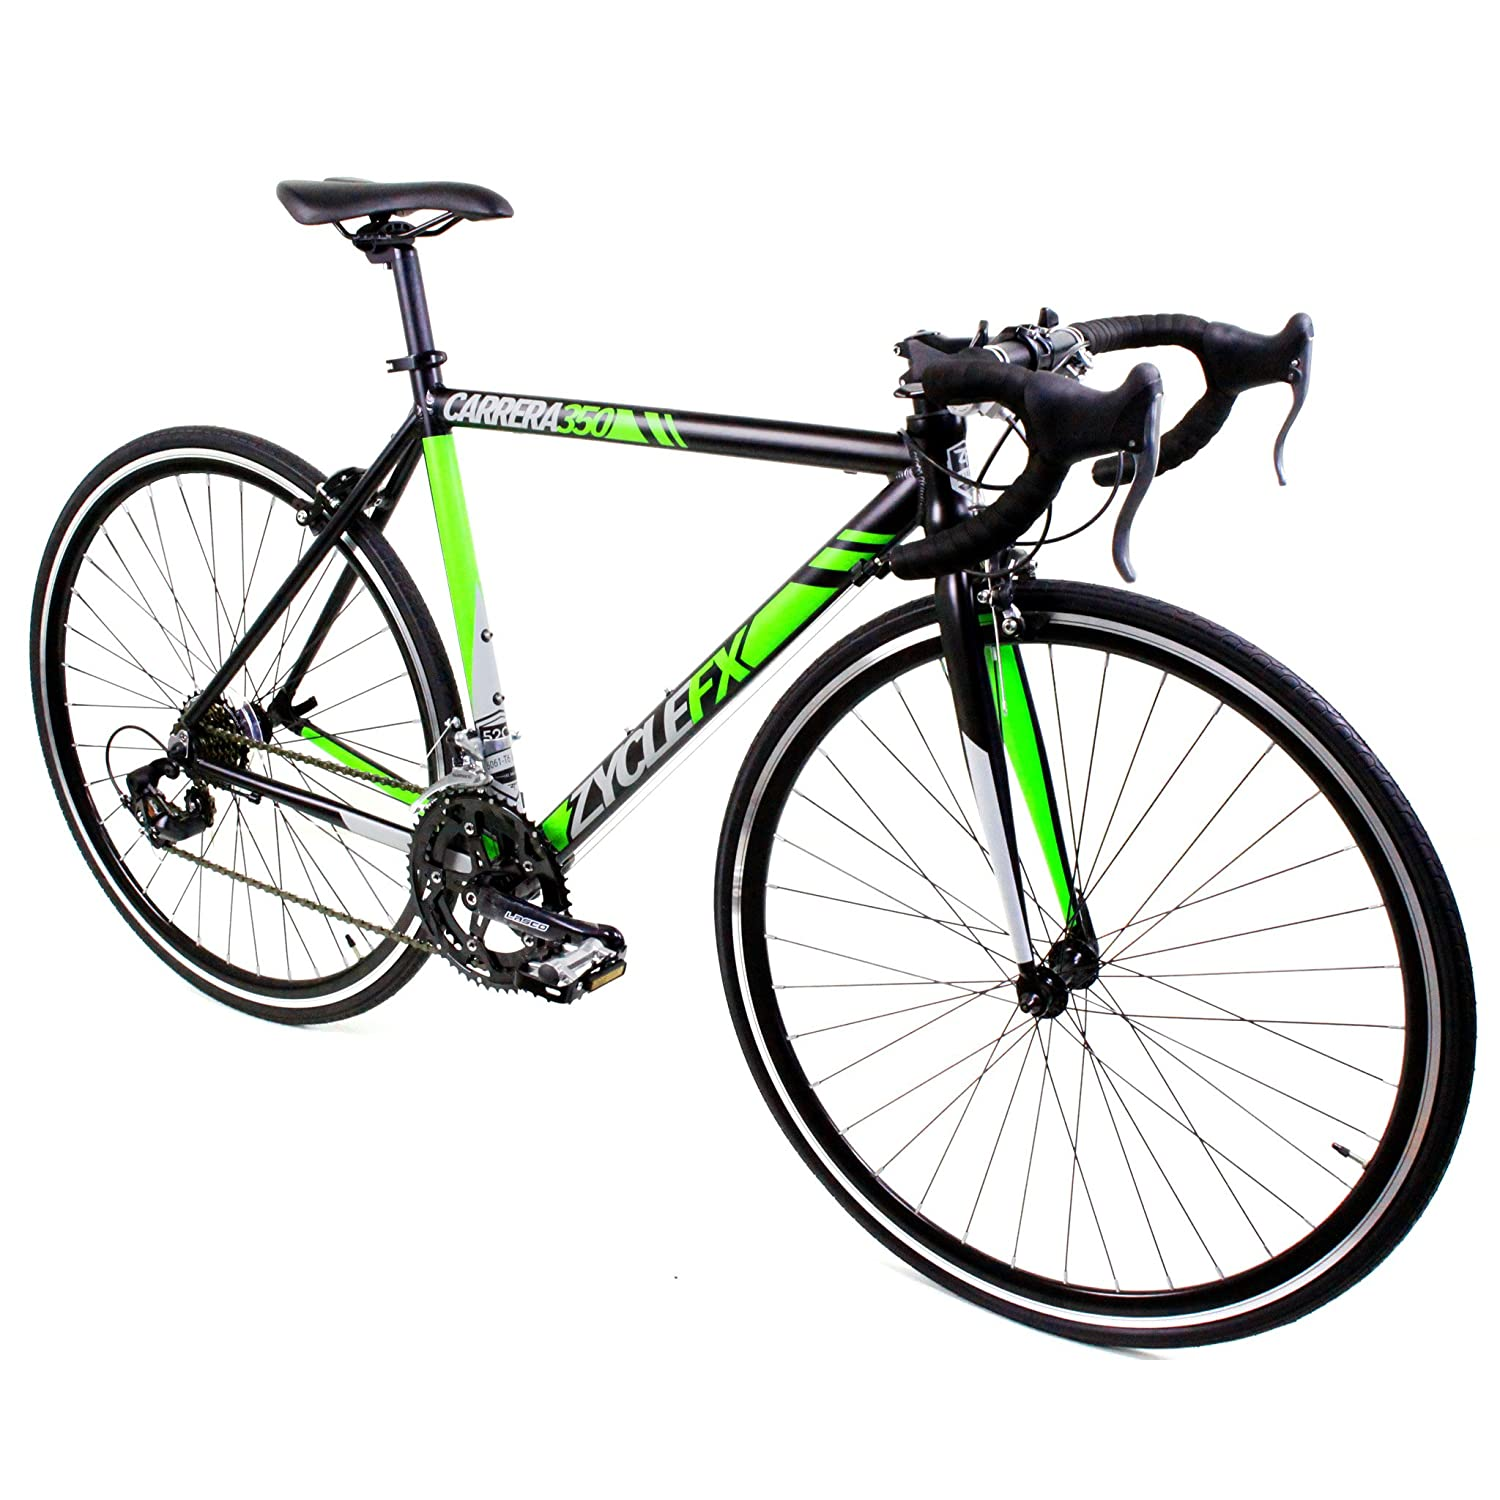 Zycle Fix Carrera 350 Road Bike Matte Black Lime